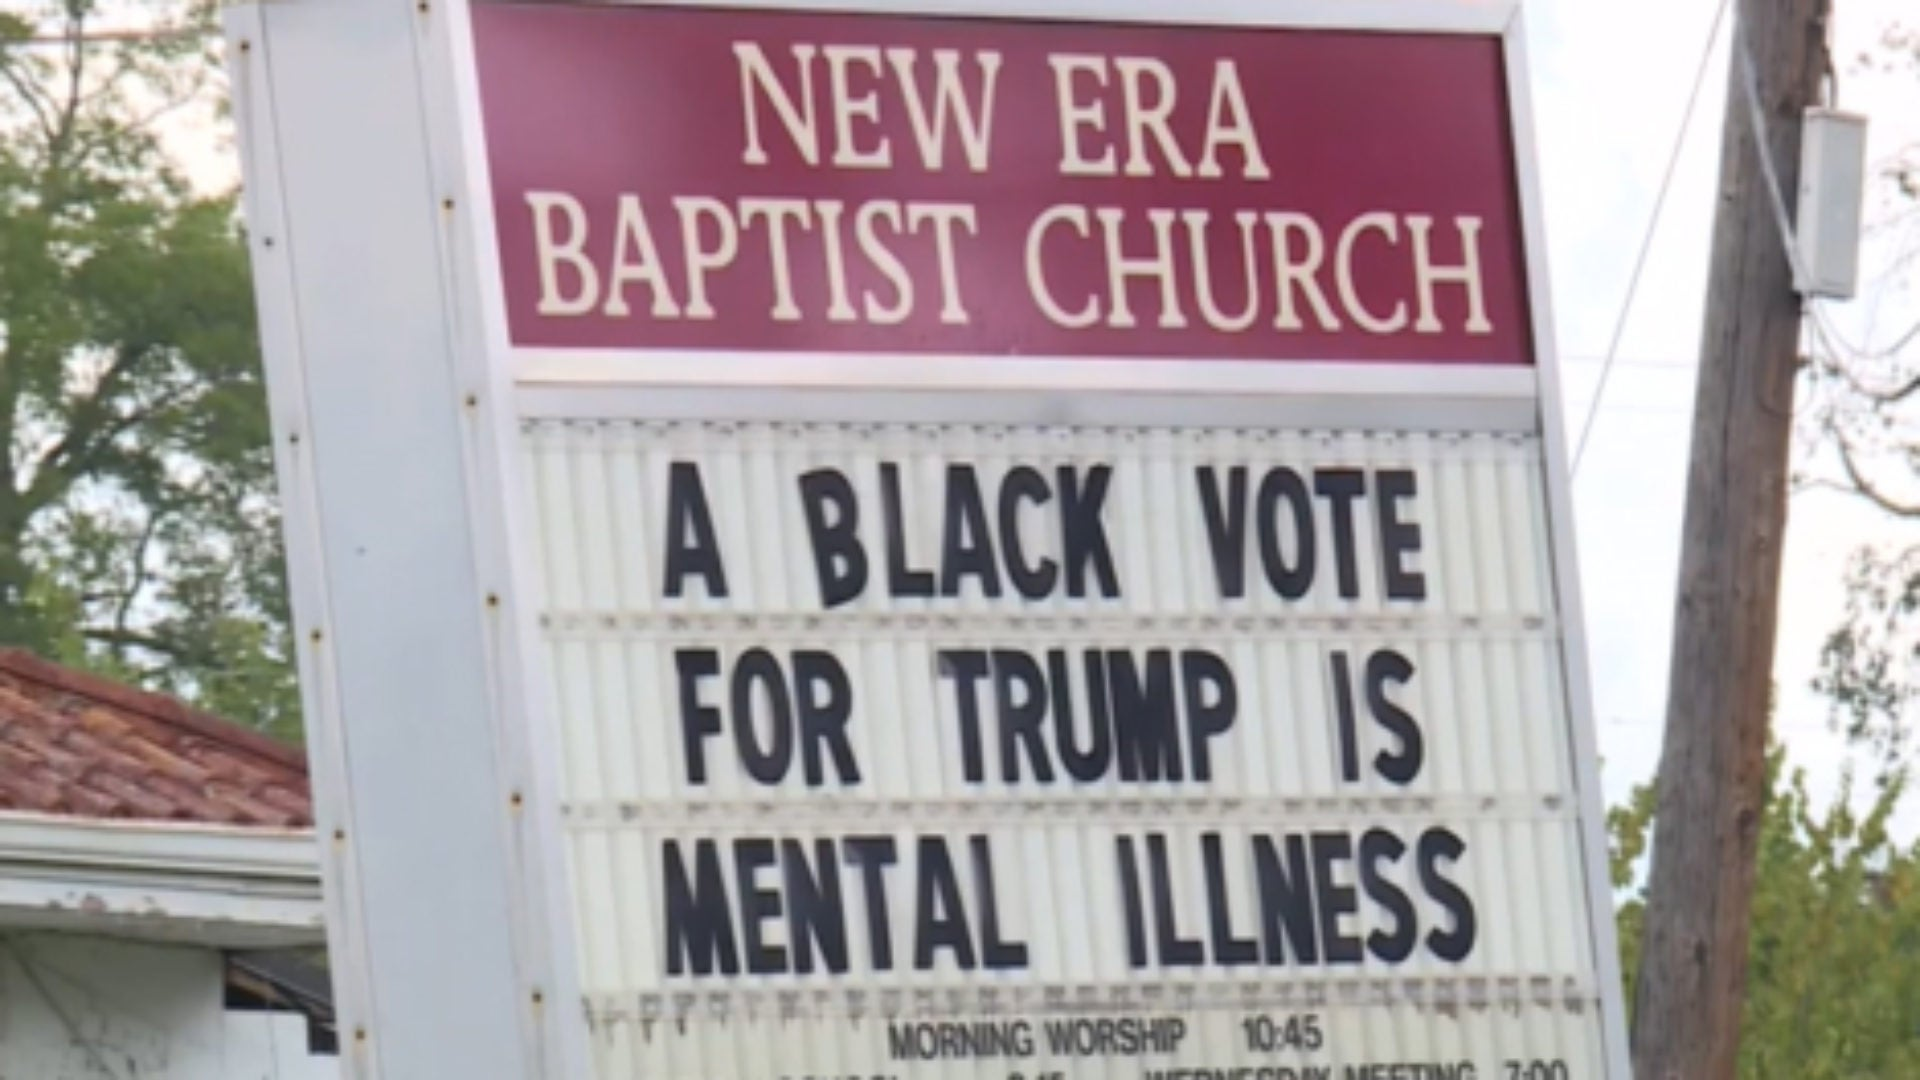 Church's Controversial Signs Says, 'A Black Vote For Trump Is Mental Illness'